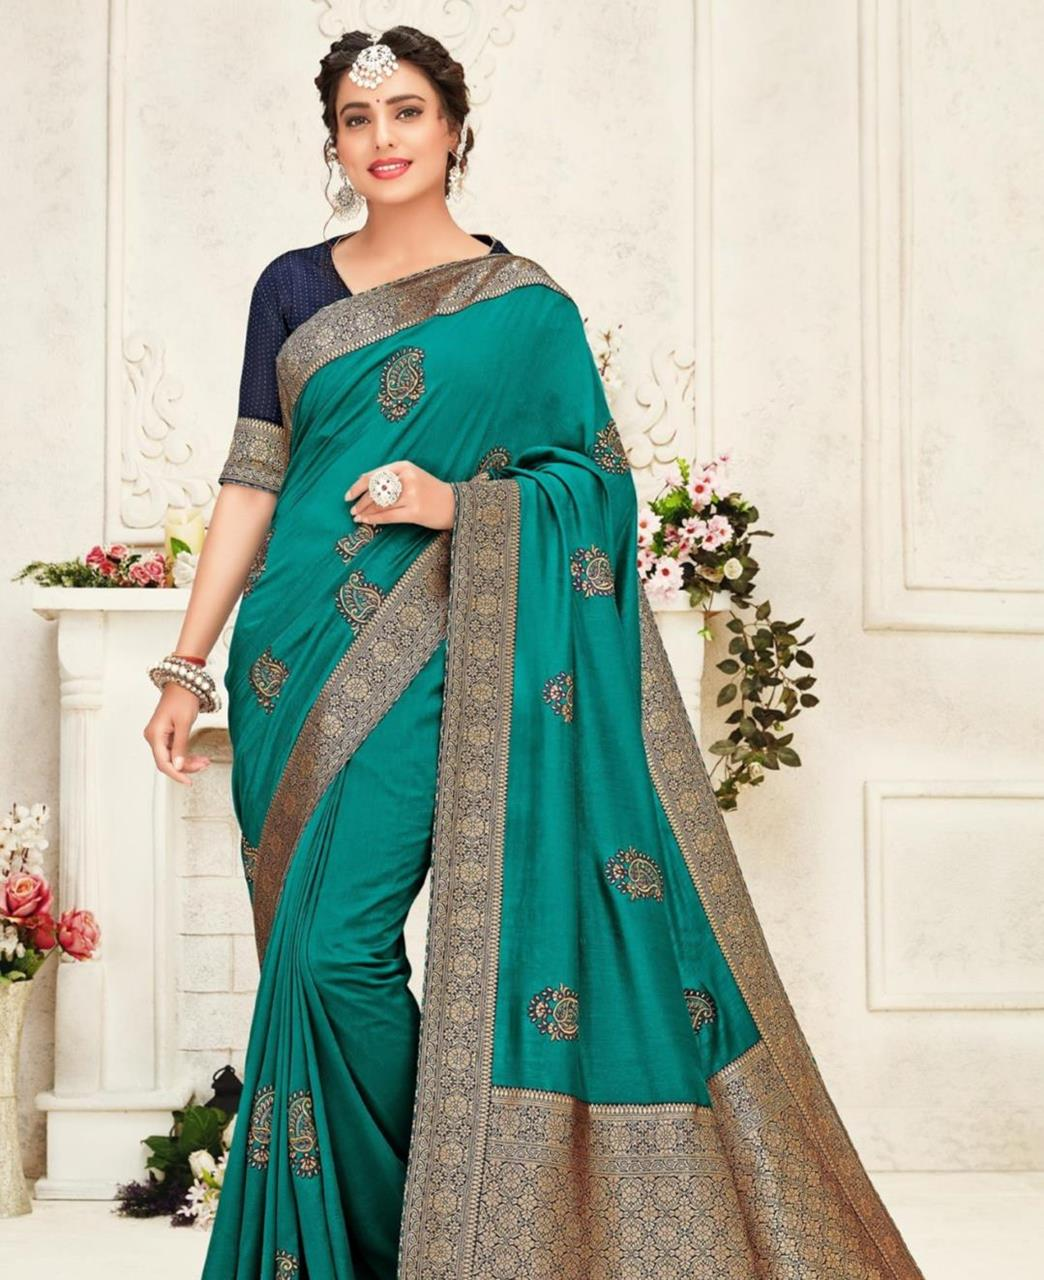 Stone Work Silk Saree in Turqouis Green